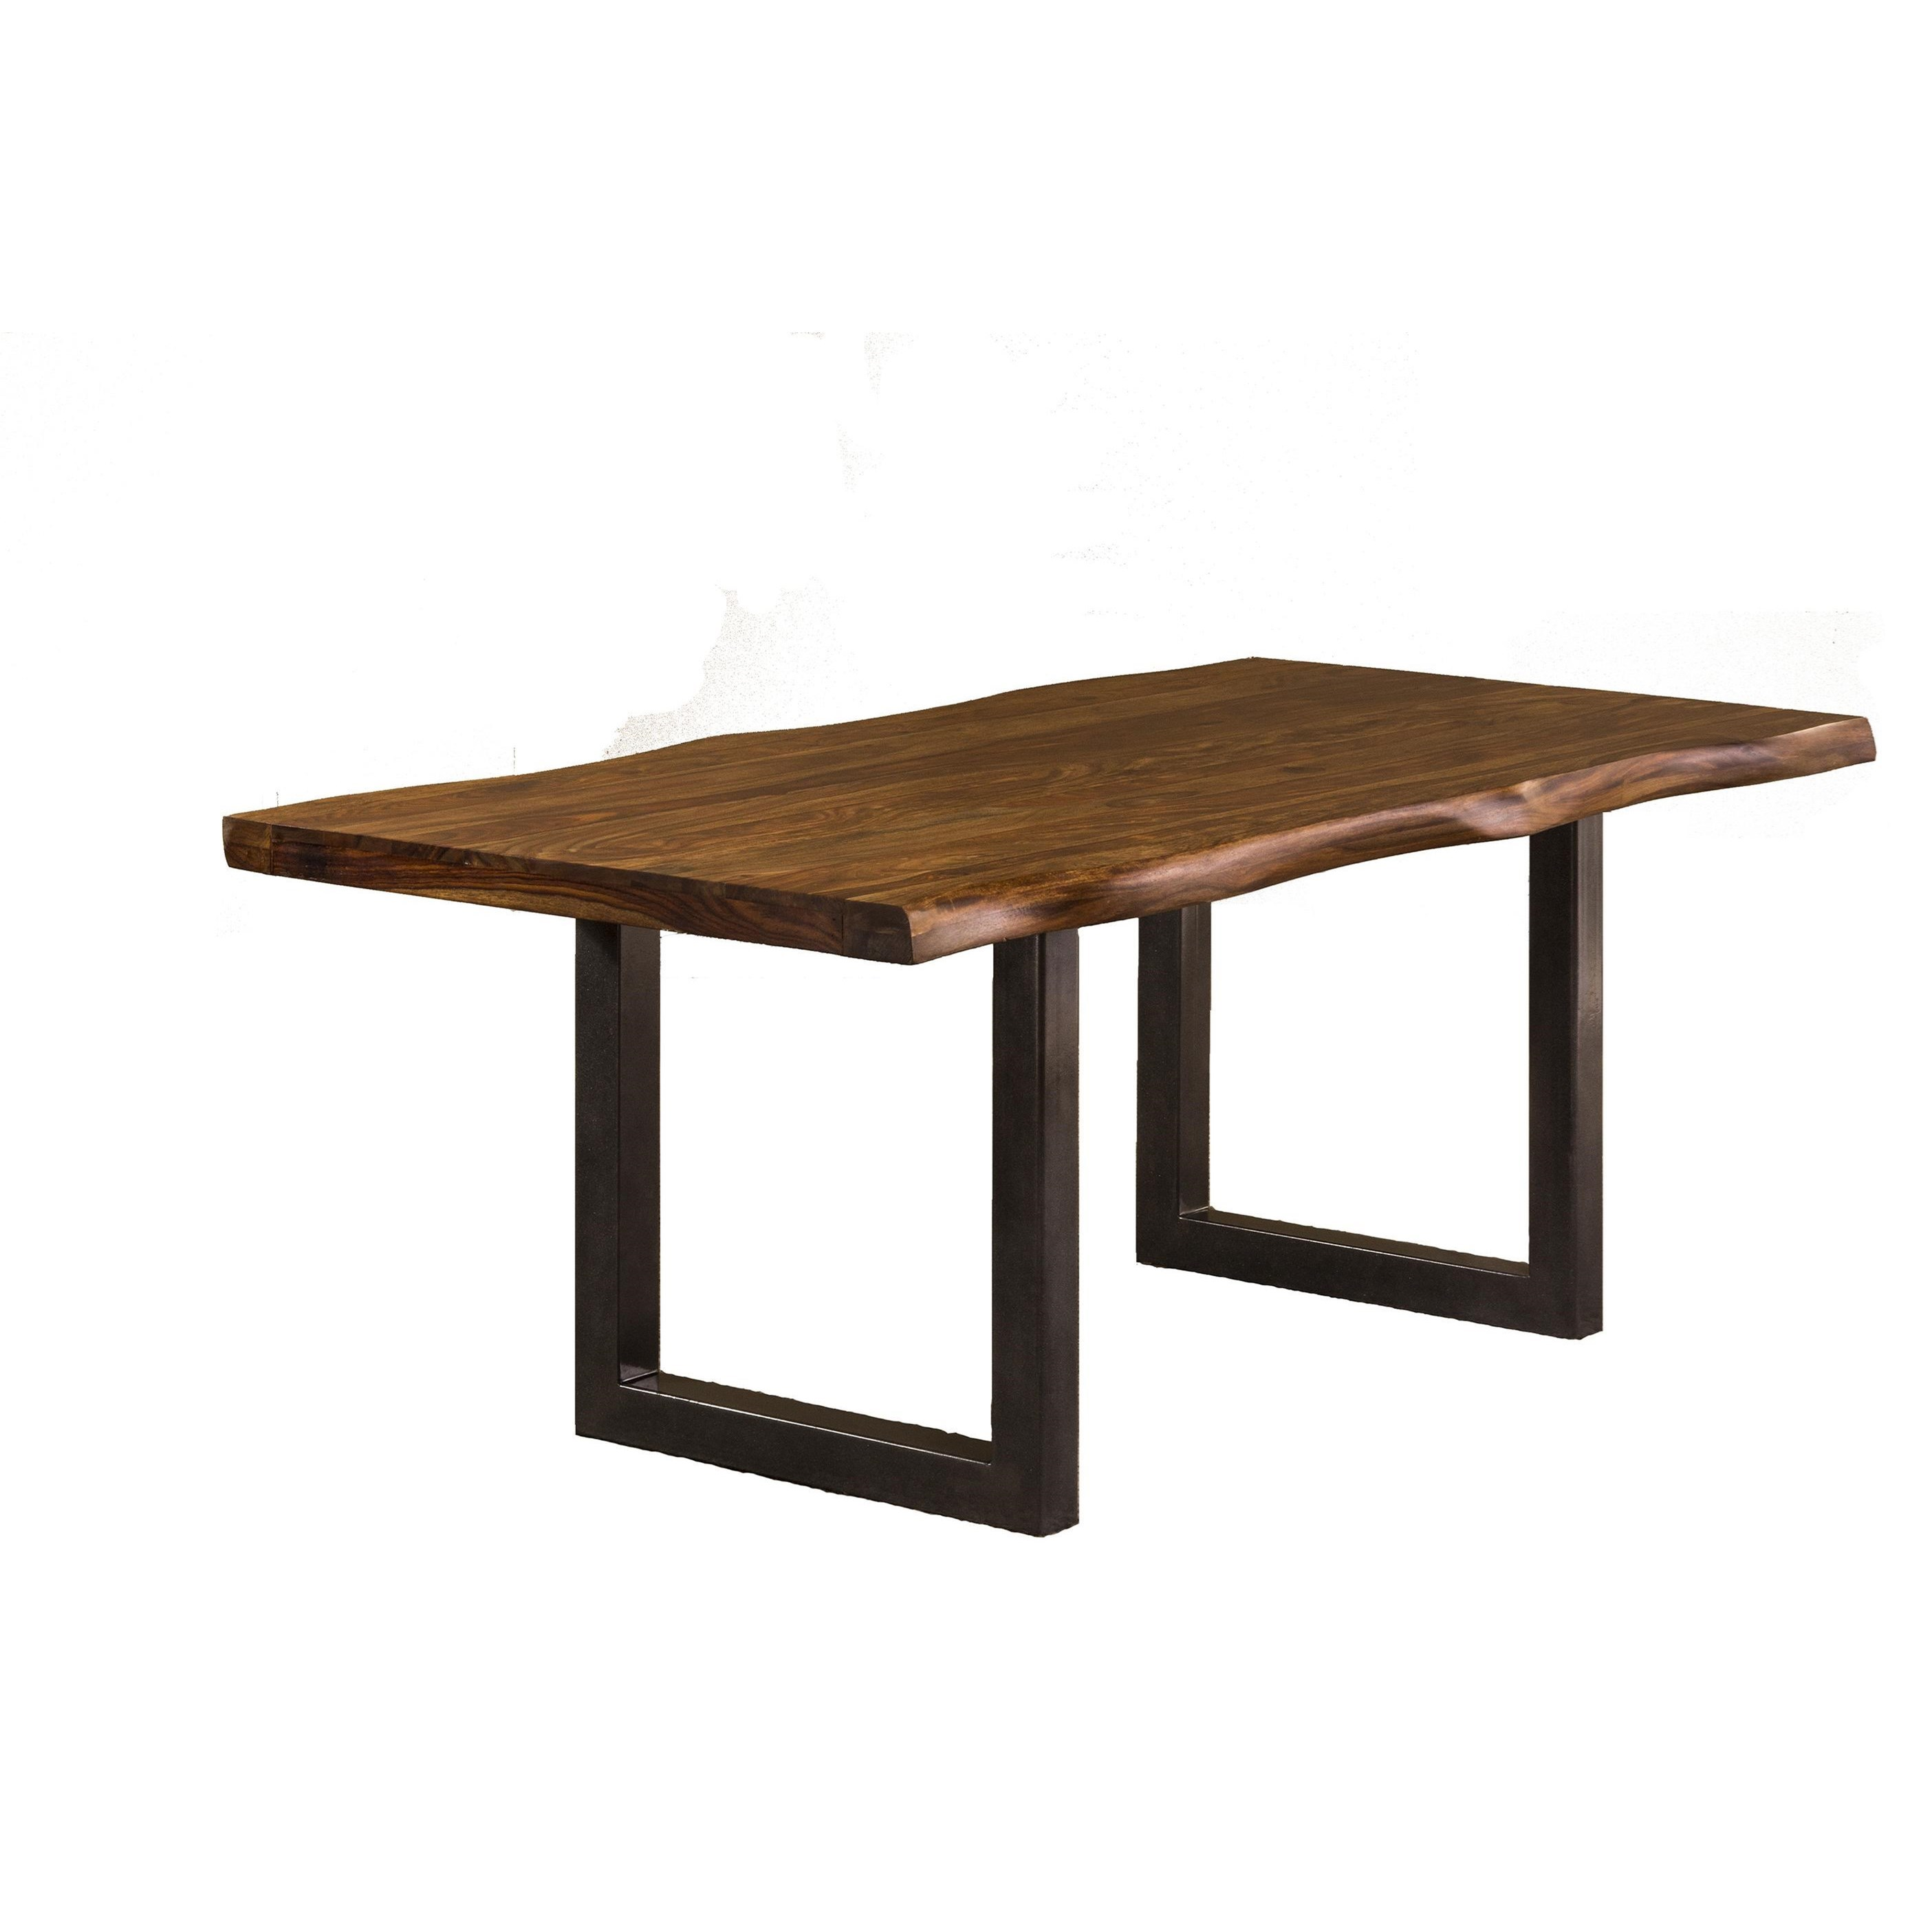 rectangle dining table sheesham wood rectangular dining table by 1749